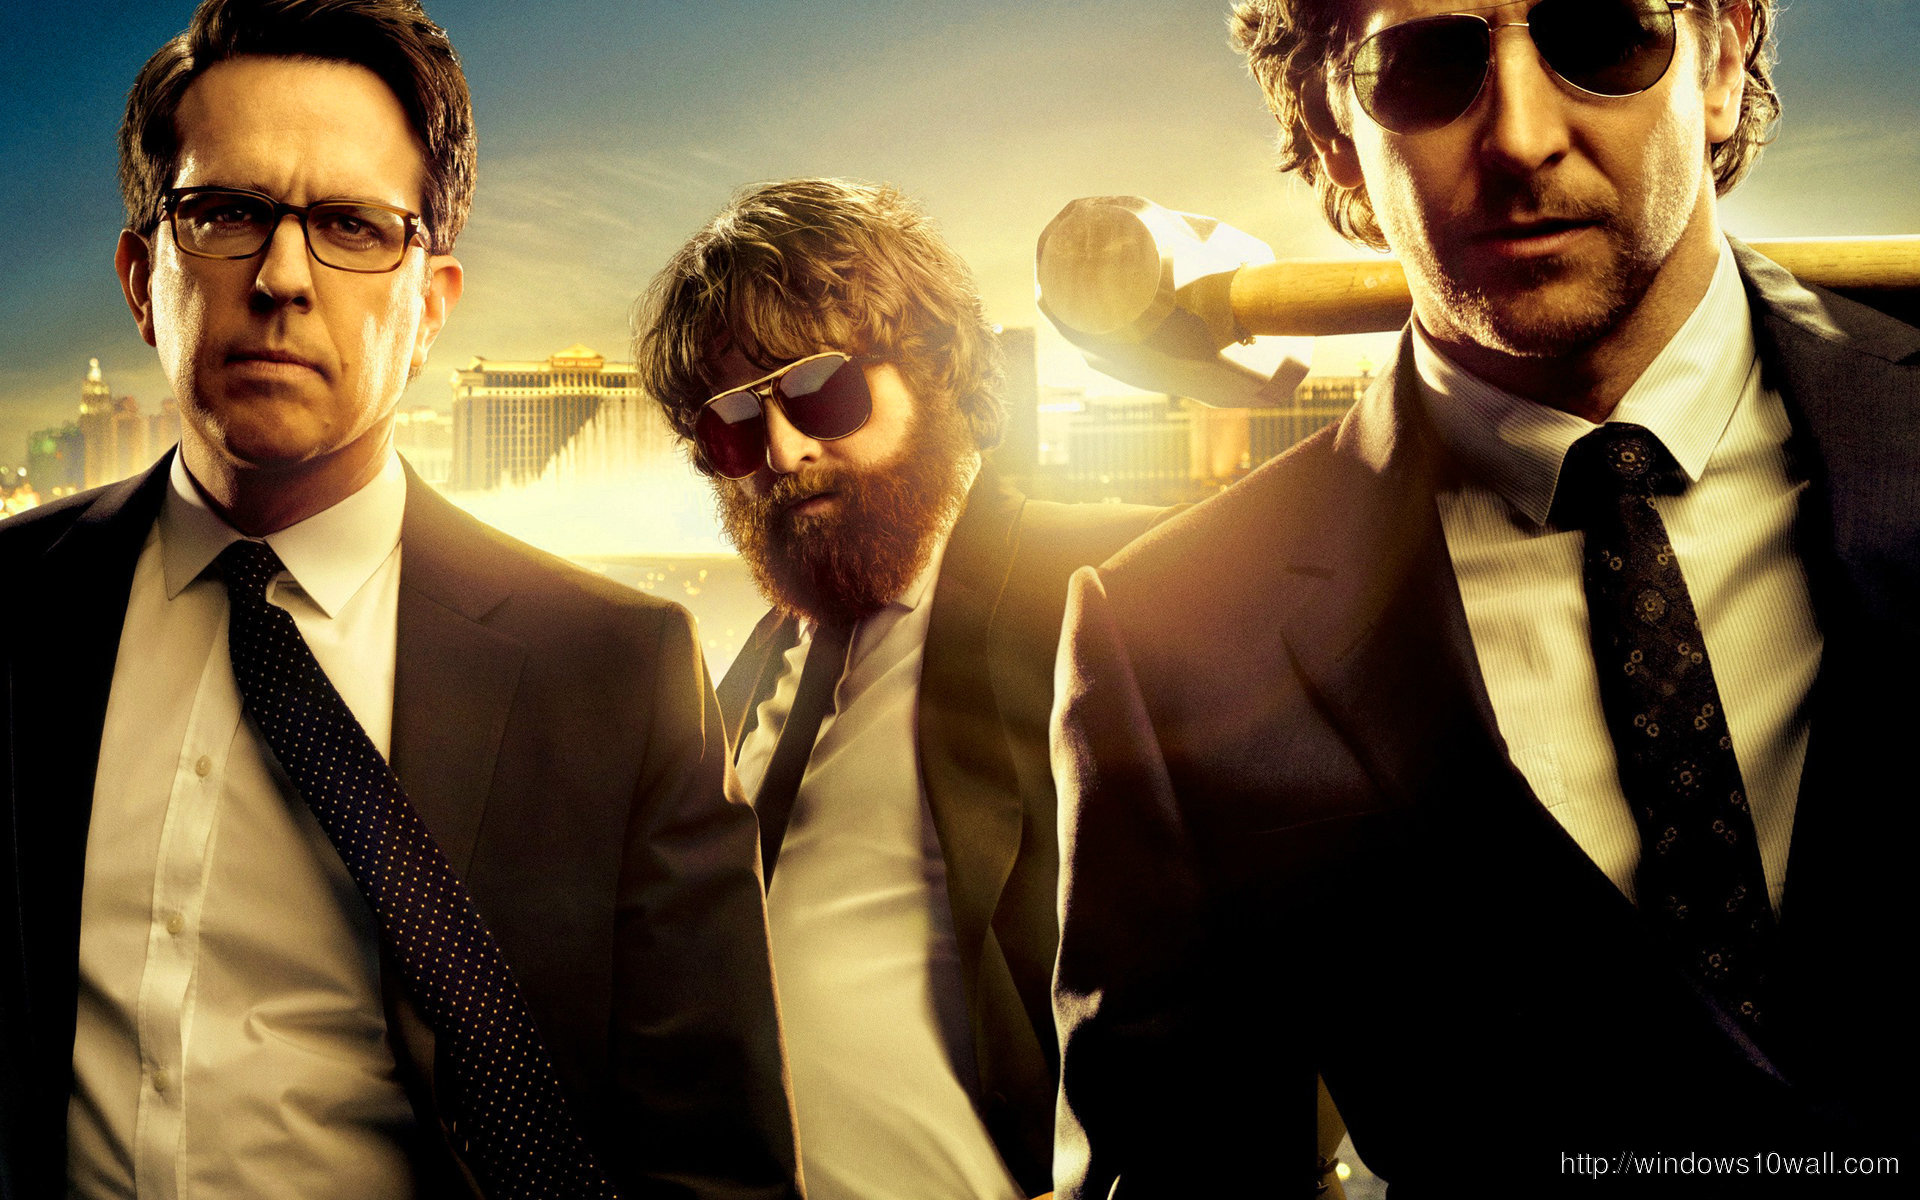 The Wolf Pack Wearing Suits The Hangover Ideas Background Wallpaper Windows 10 Wallpapers